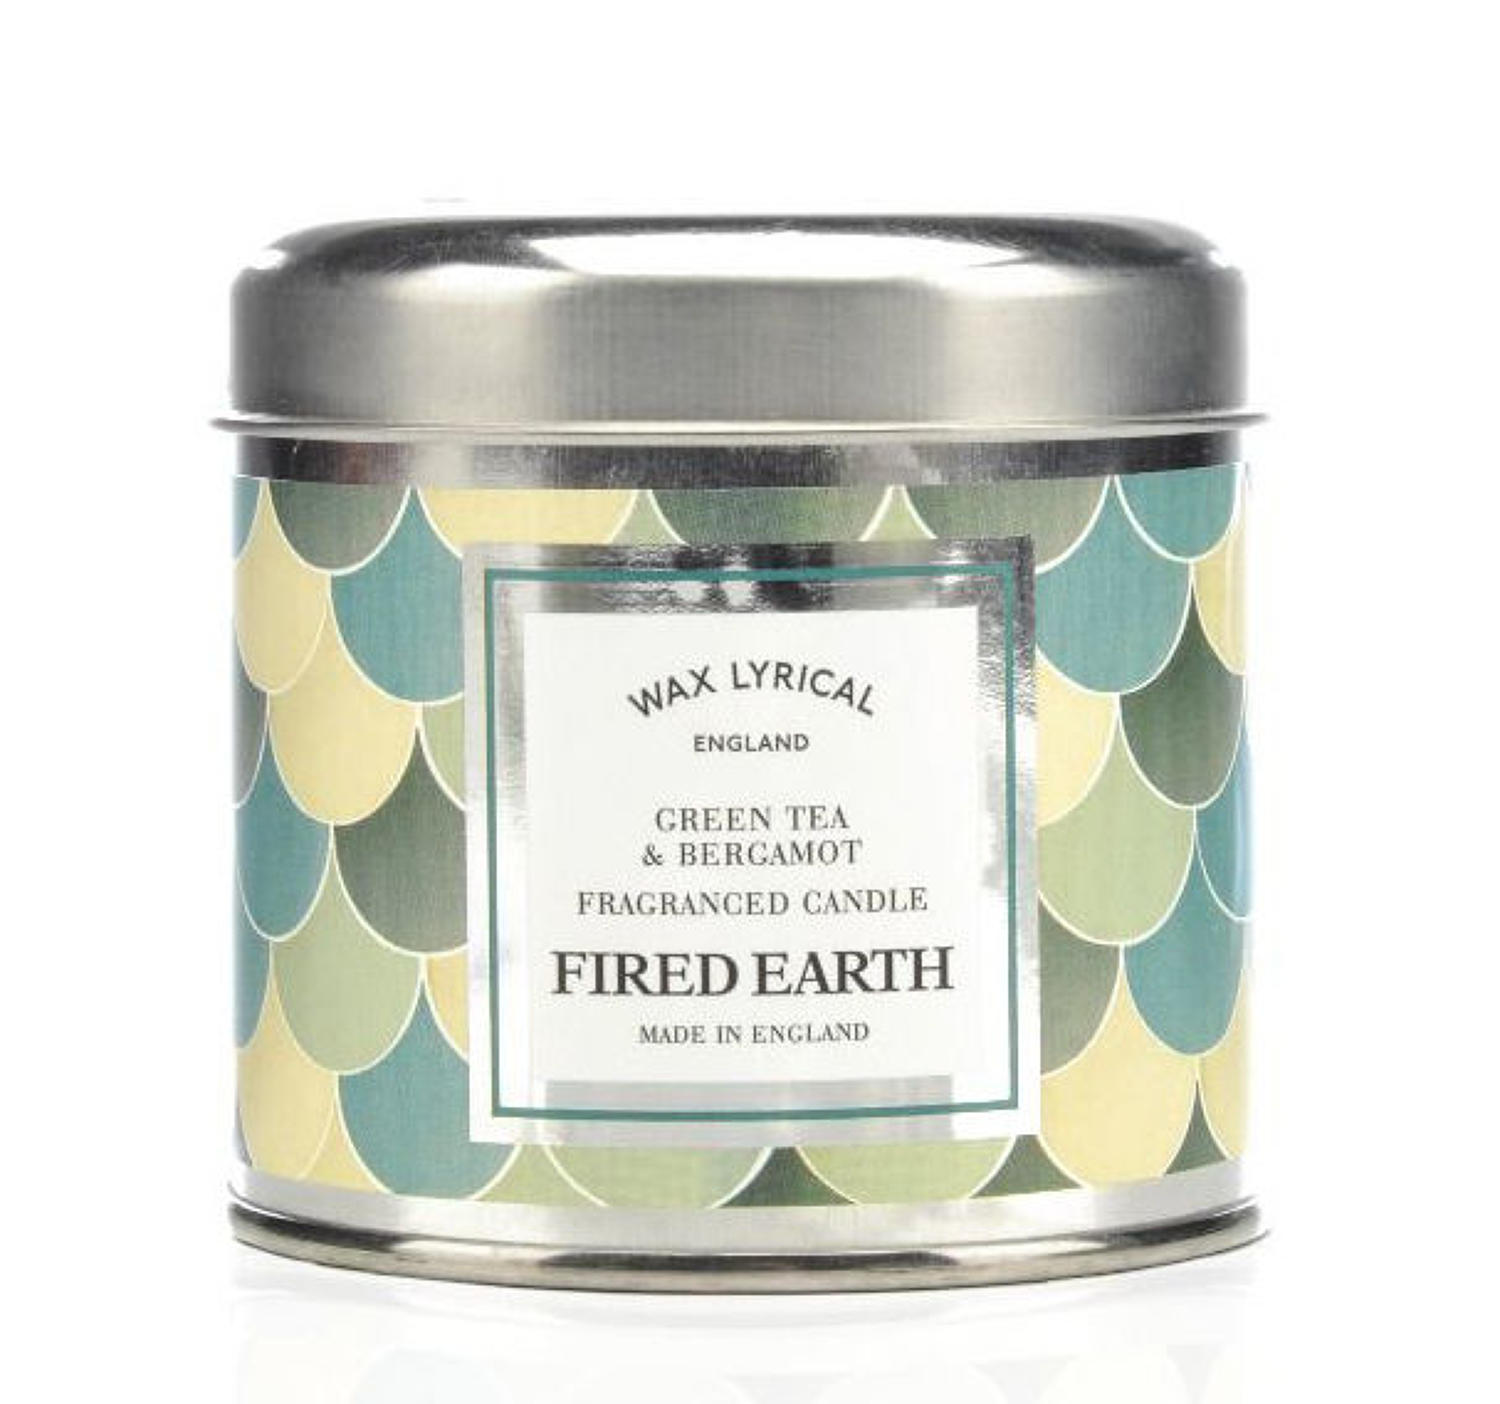 Wax Lyrical Fired Earth Green Tea & Bergamot candle tin